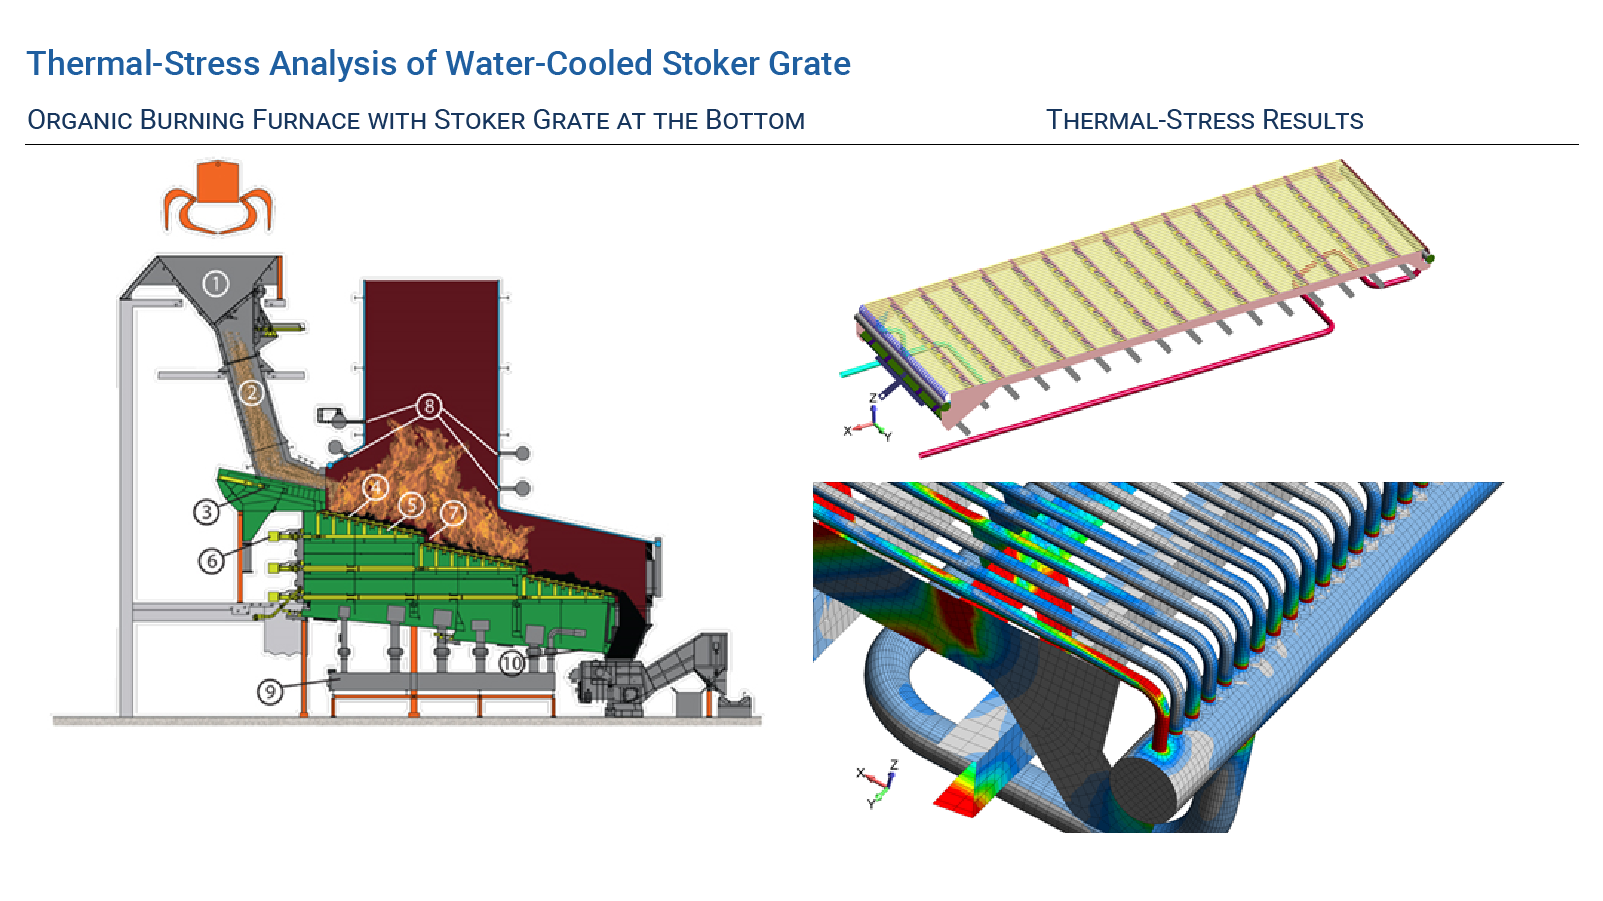 Thermal-Stress Analysis of Water-Cooled Stoker Grate